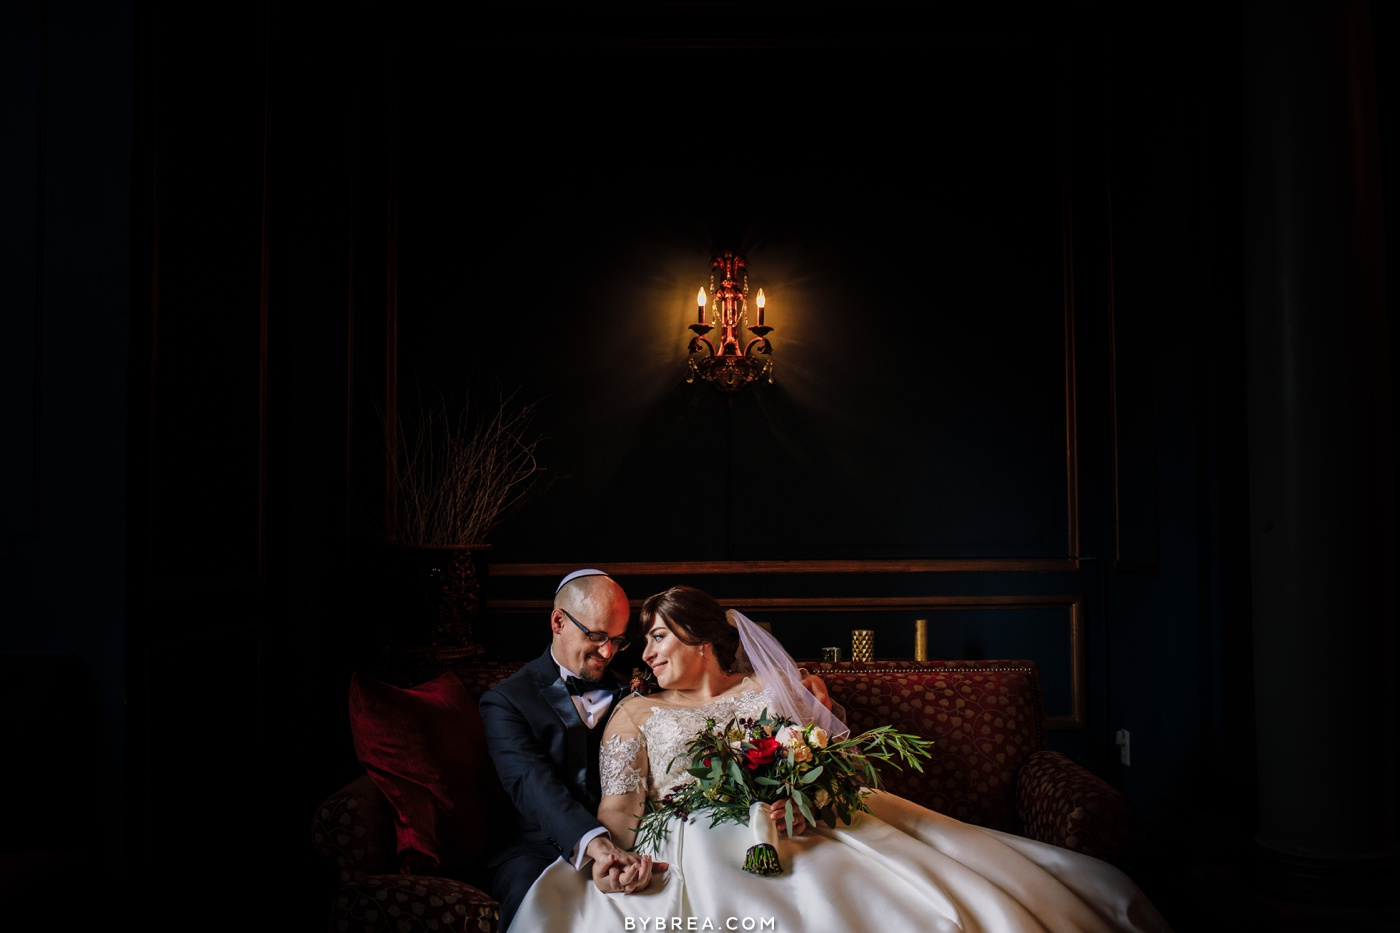 Bride and groom portrait on 12th floor at the Belvedere